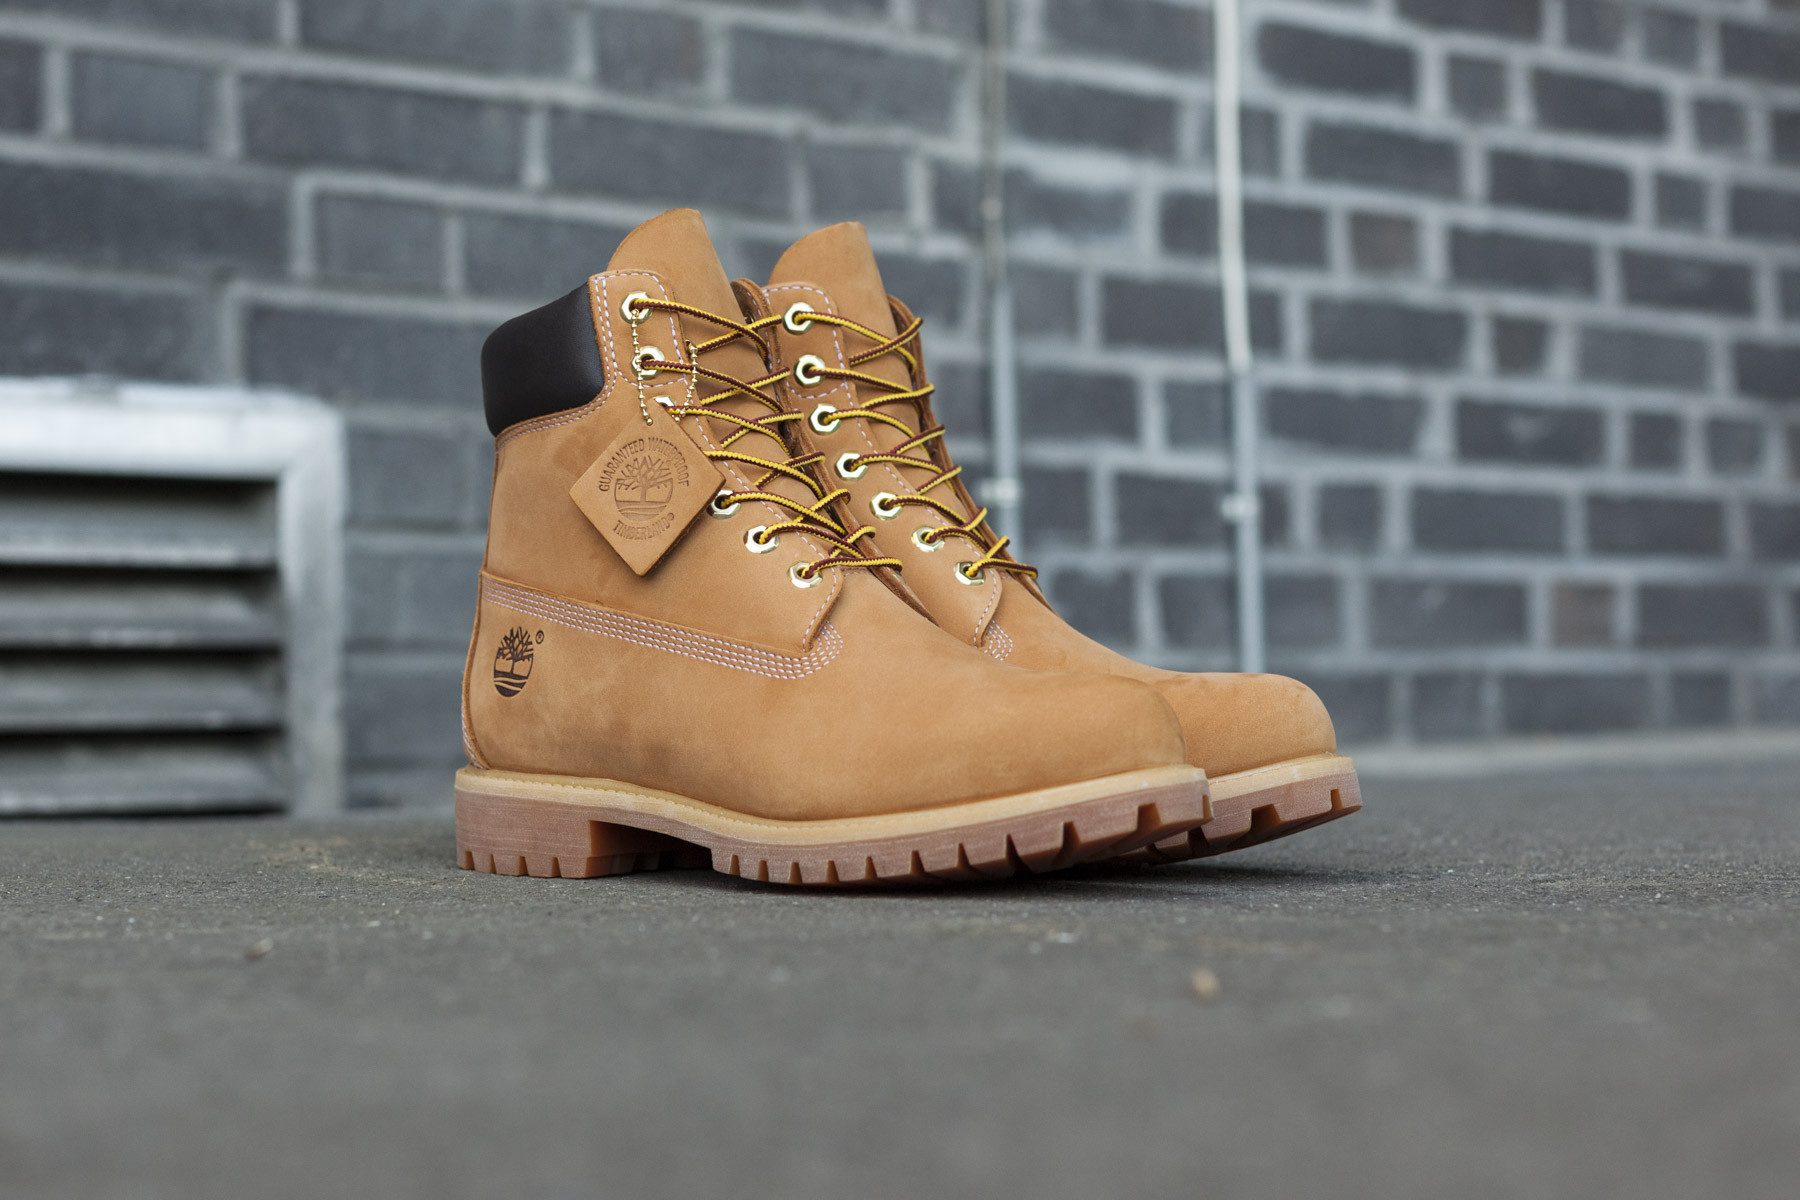 Timberland 6 Inch Premium Boots Sneaker.no